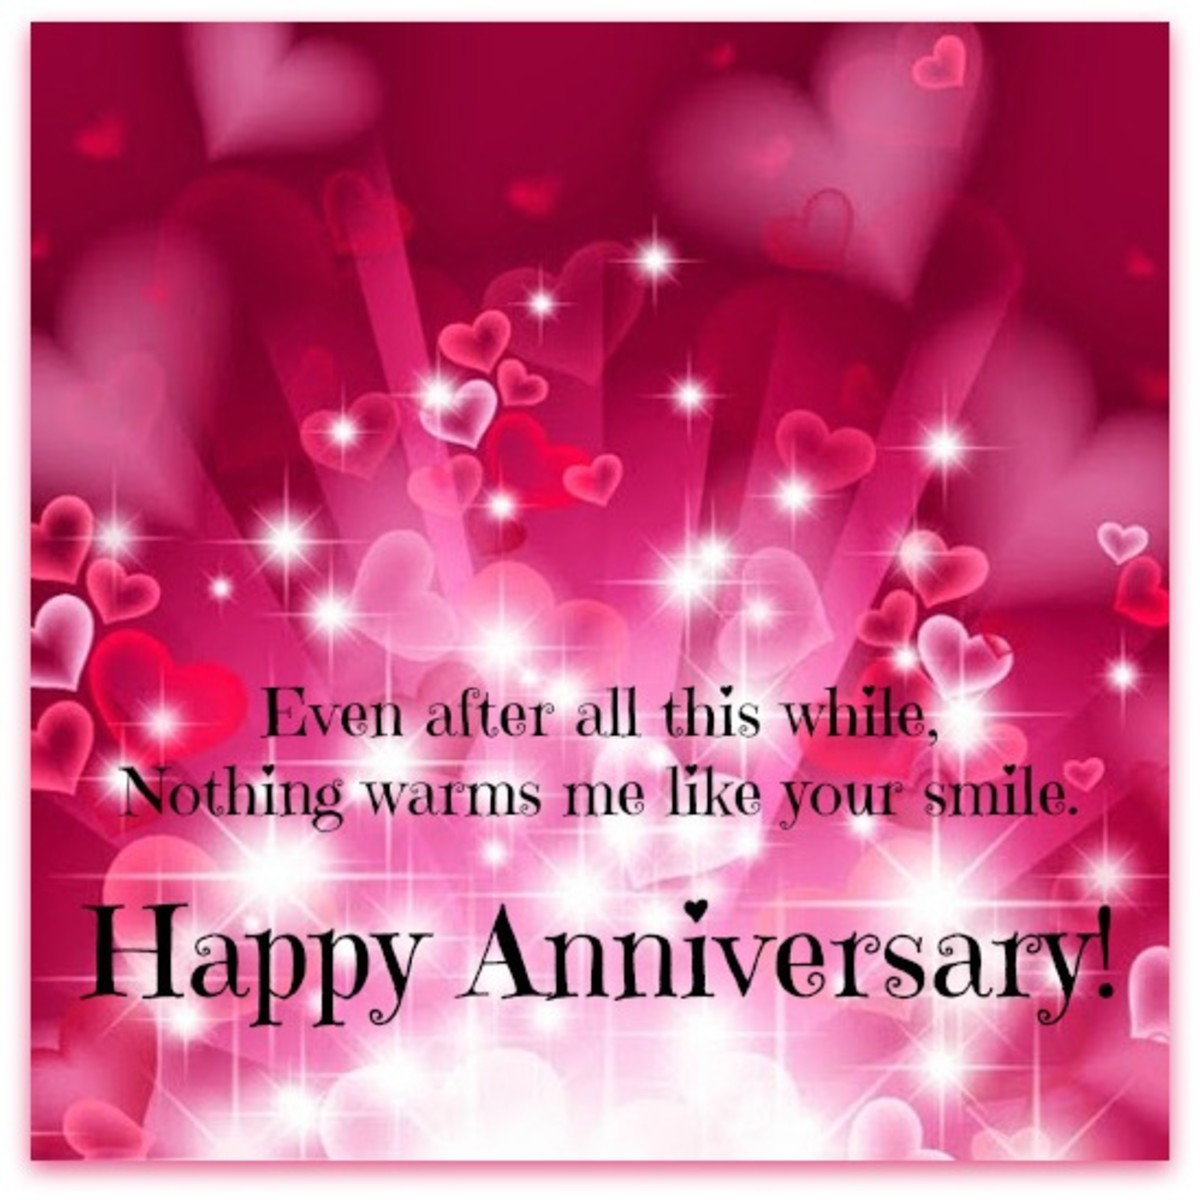 Happy Anniversary To A Beautiful Couple Quotes: Happy Anniversary Messages